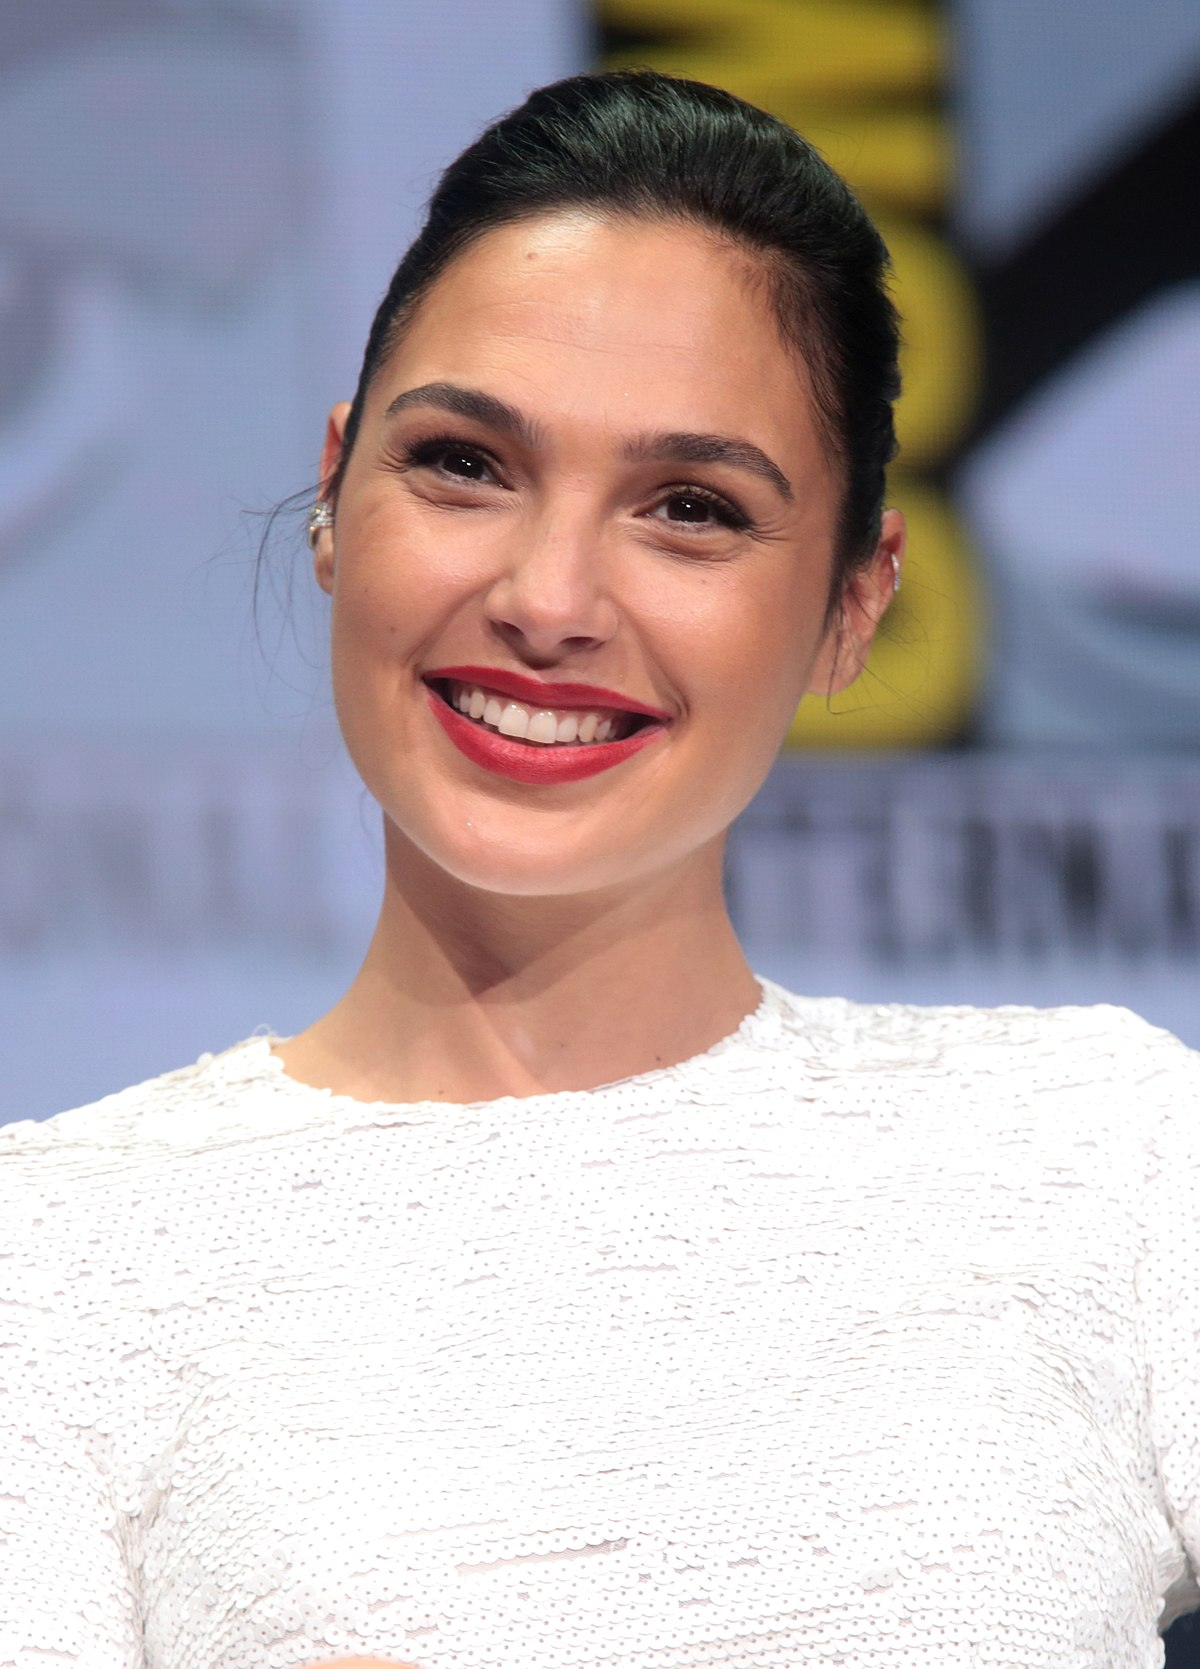 Gal Gadot Smile - Gal Gadot Net Worth, Pics, Wallpapers, Career and Biography